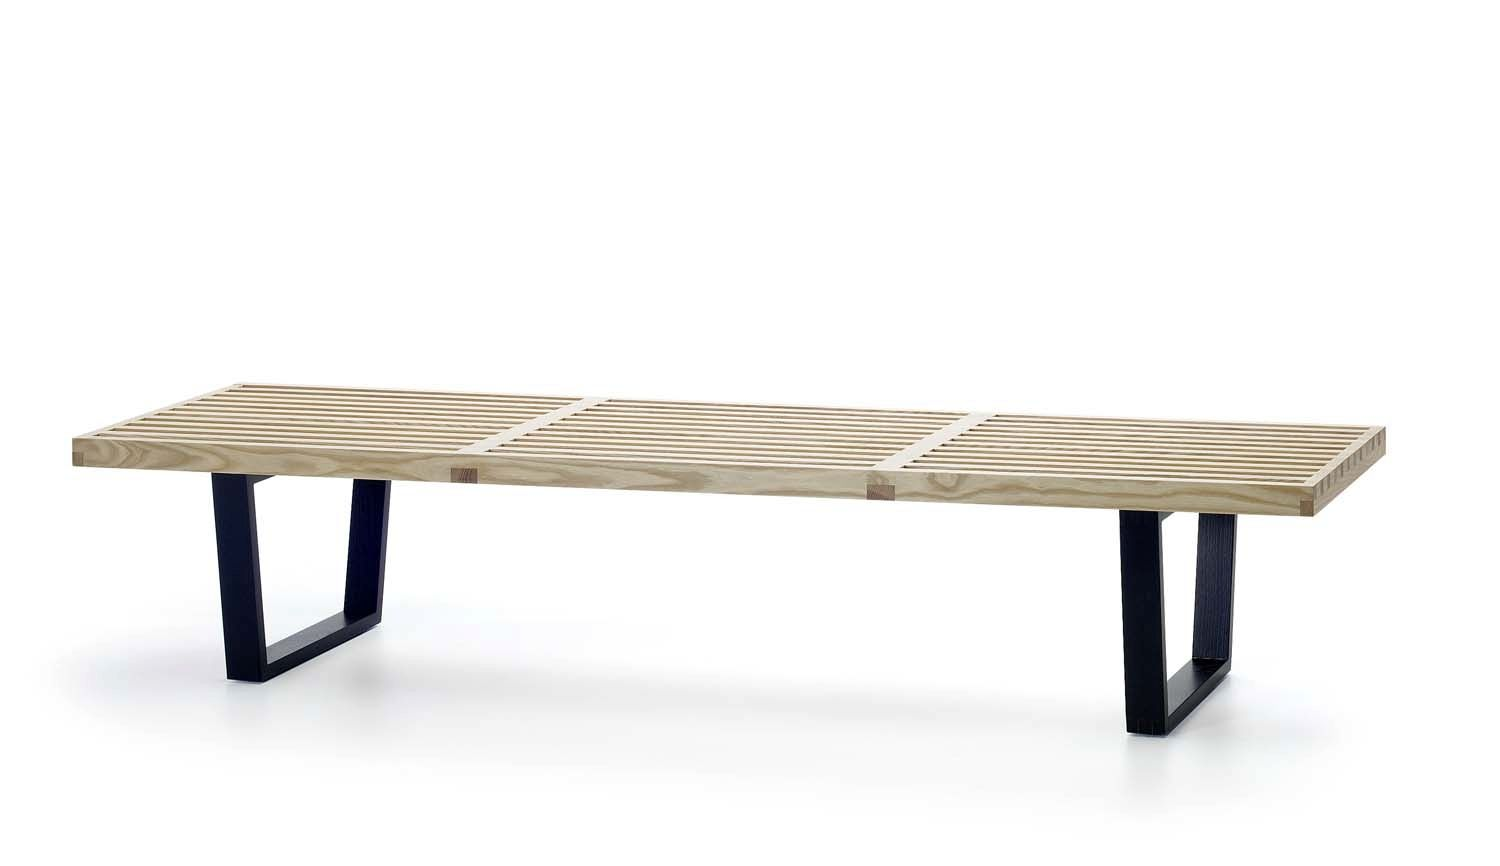 indoor benches west elm benches on hayneedle – shop indoor bench  - indoor bench contemporary wooden commercial nelson vitra